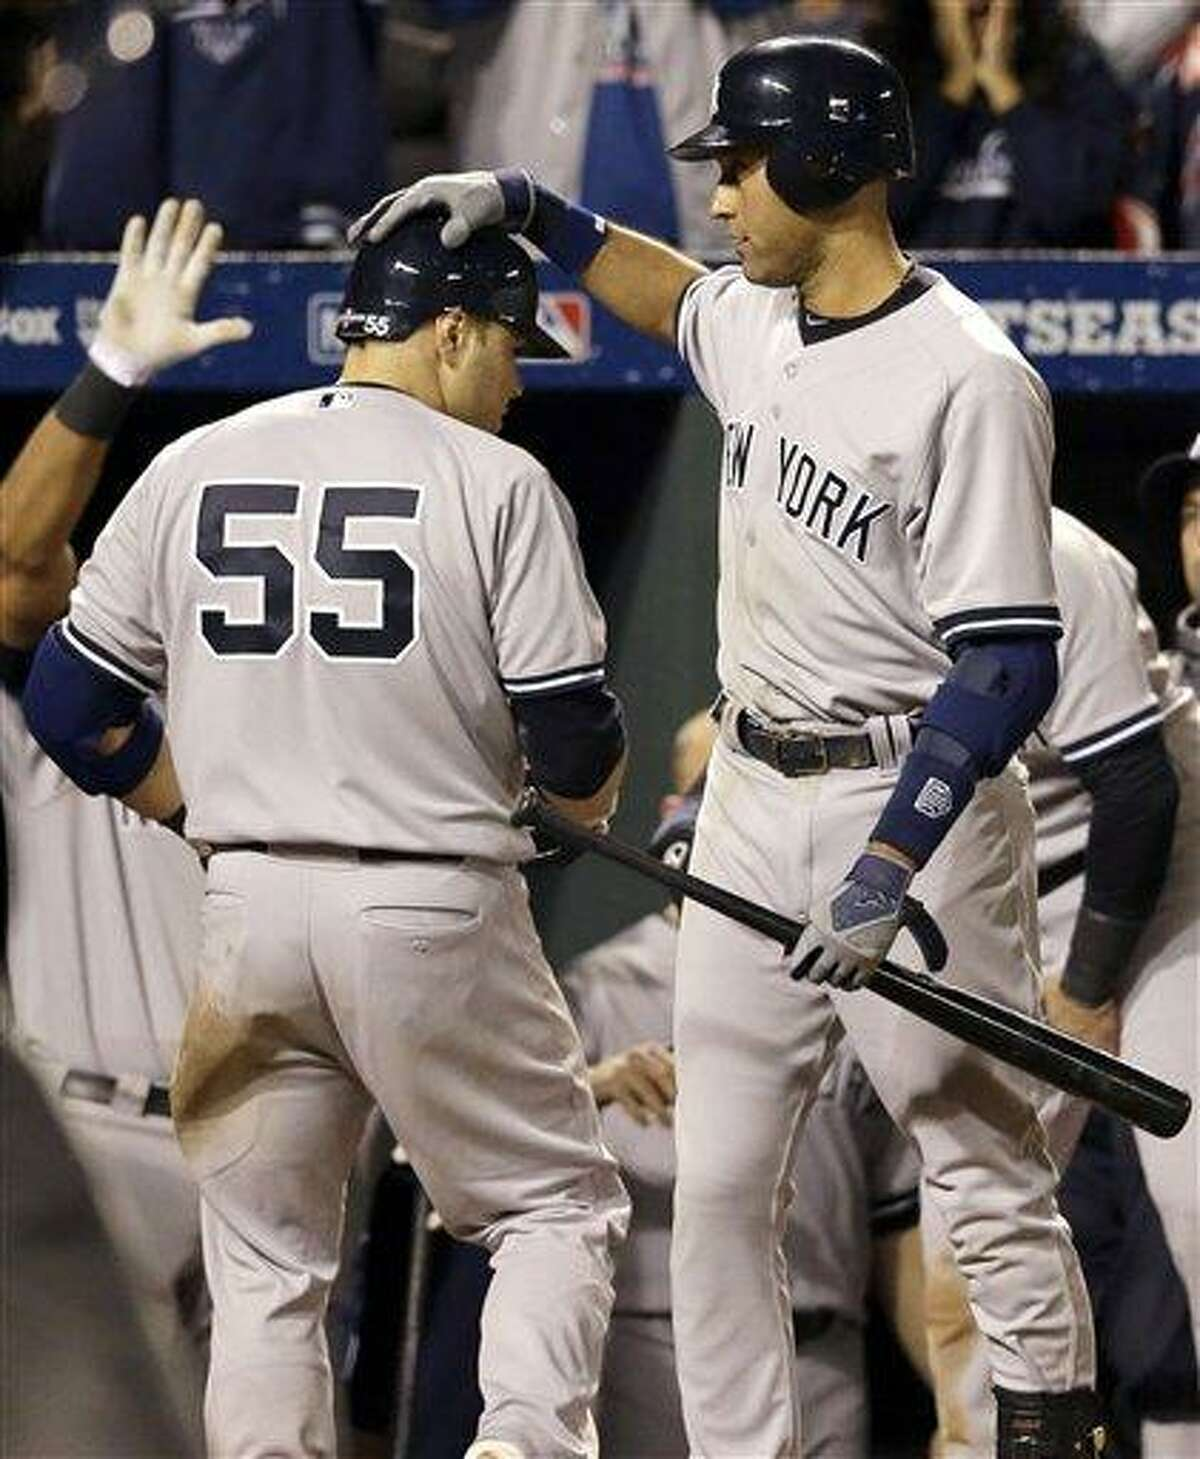 New York Yankees' Derek Jeter, right, congratulates teammate Russell Martin after Martin hit a solo home run in the ninth inning of Game 1 of the American League division baseball series against the Baltimore Orioles on Sunday, Oct. 7, 2012, in Baltimore. New York won 7-2. (AP Photo/Patrick Semansky)